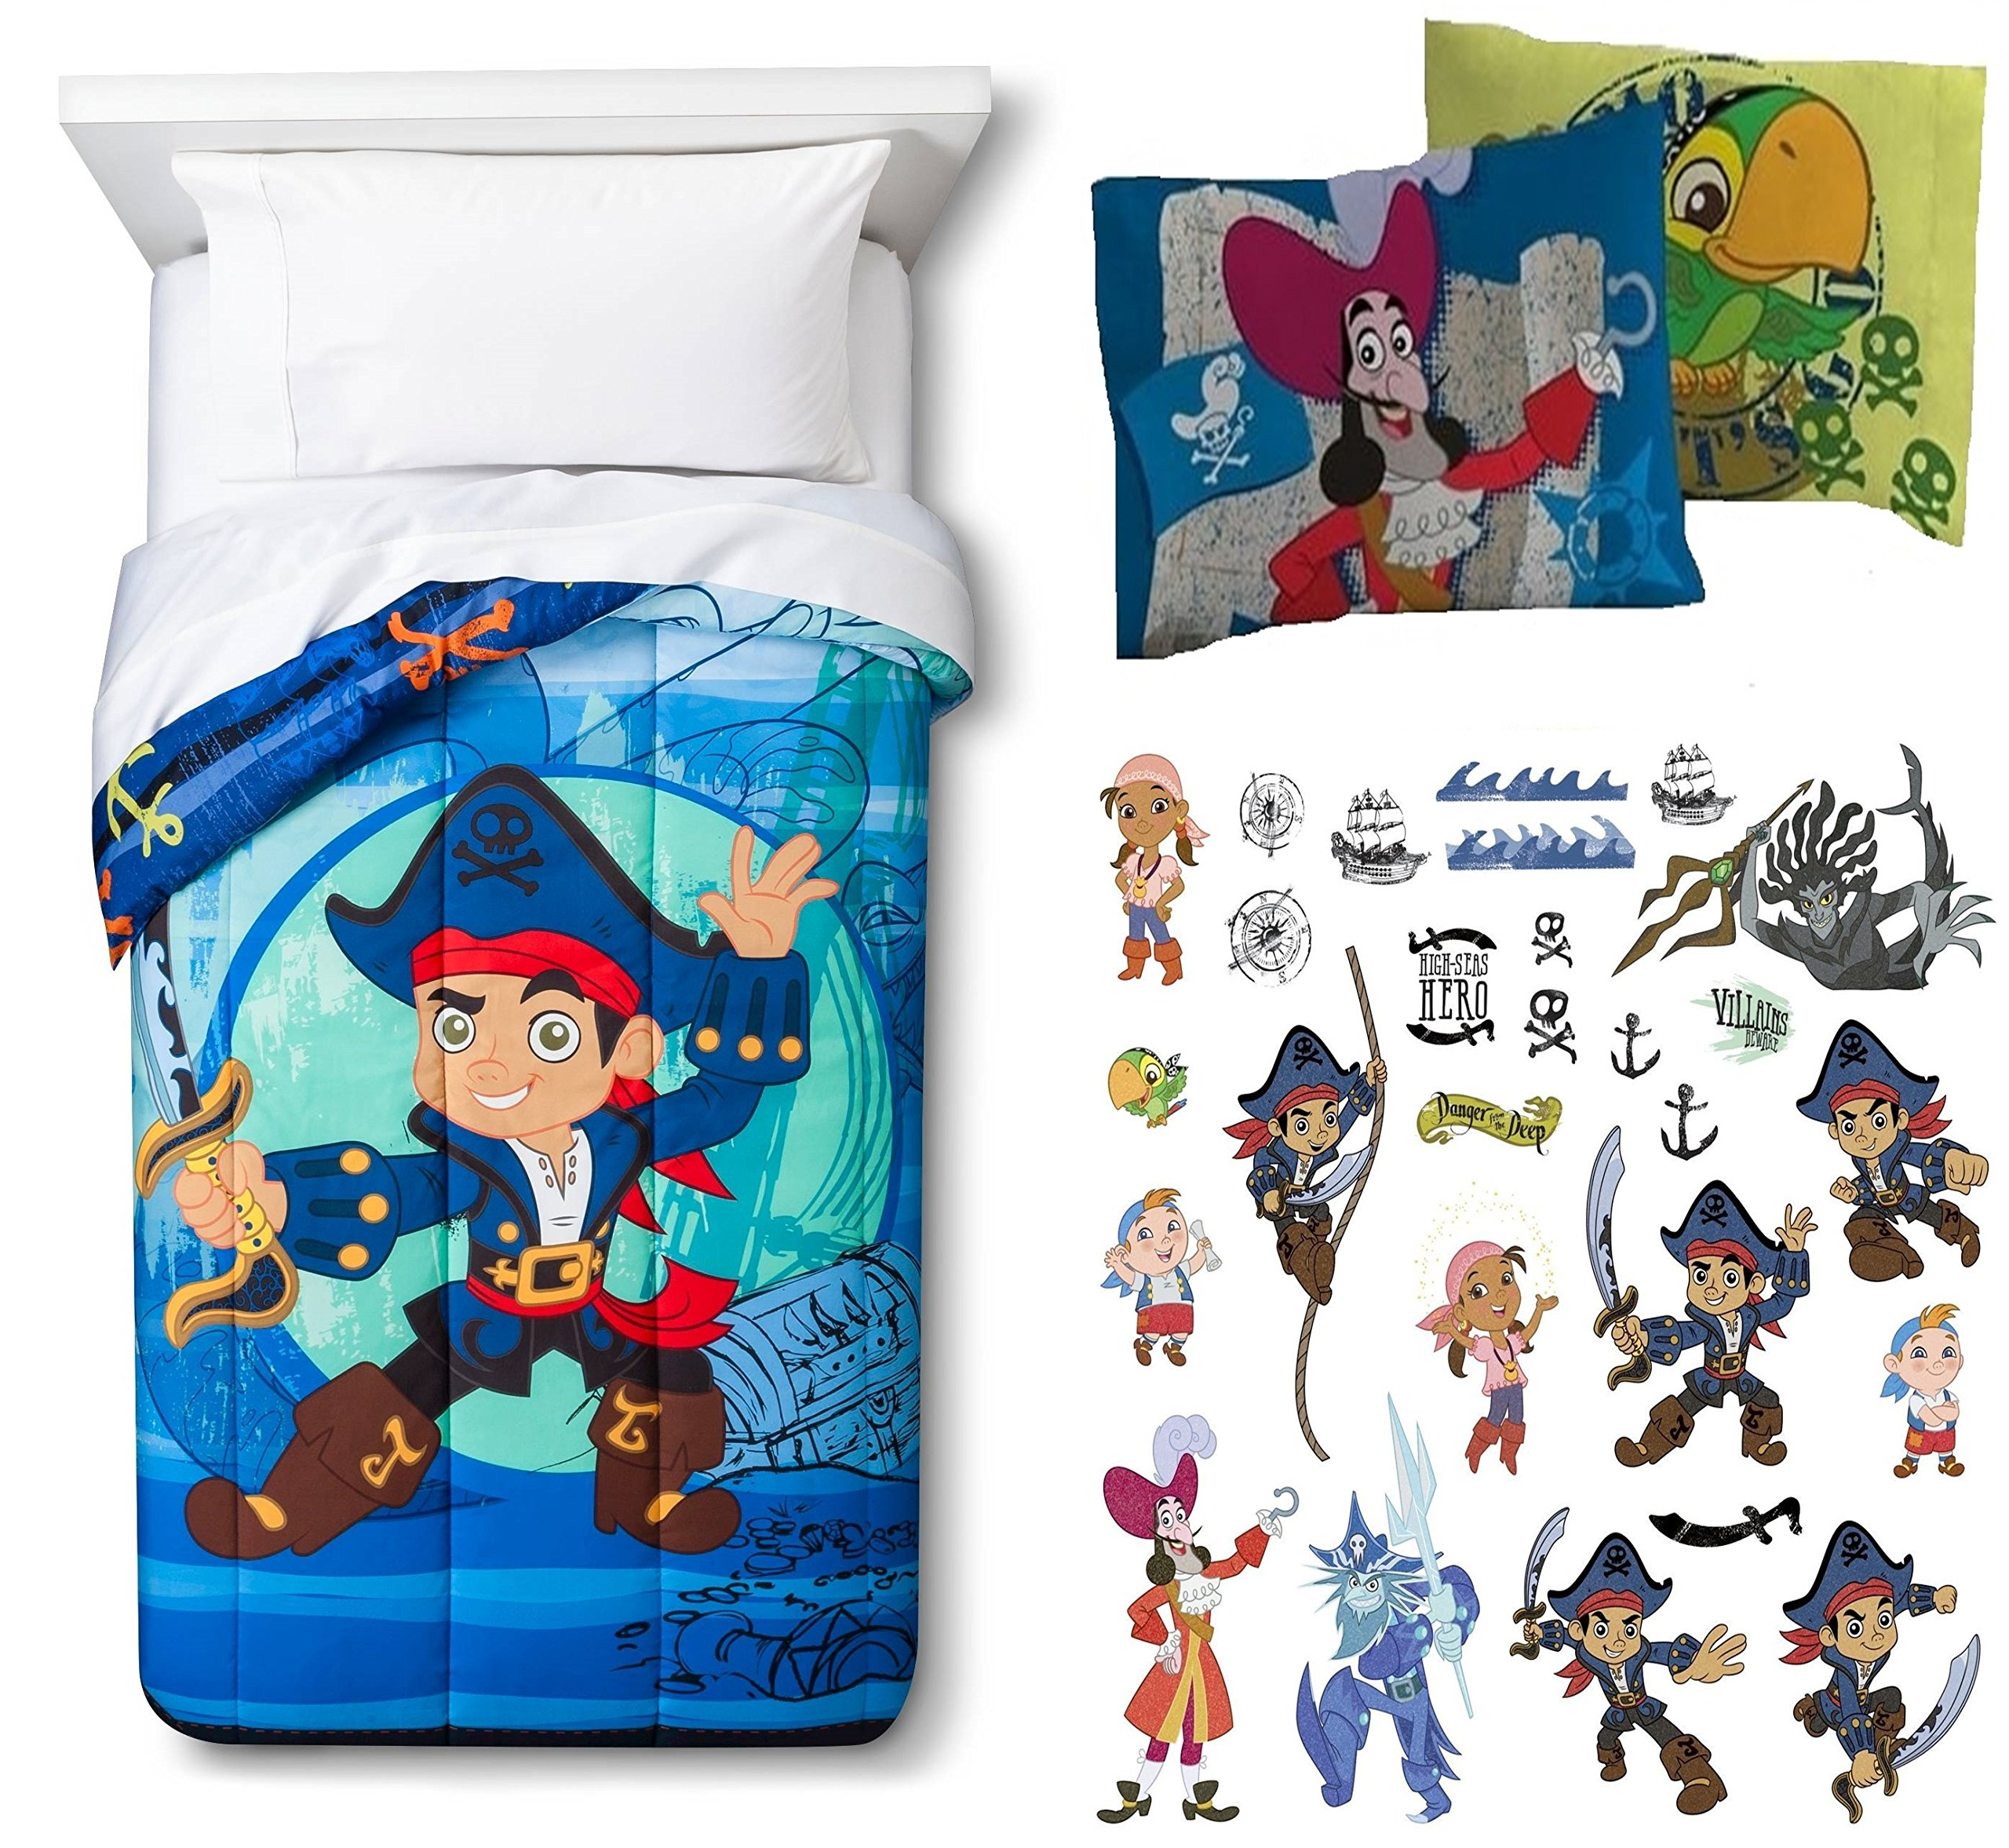 Jake and the Neverland Pirates Twin Comforter, Two Reversible Pillowcases and 27pc set of Wall Decals